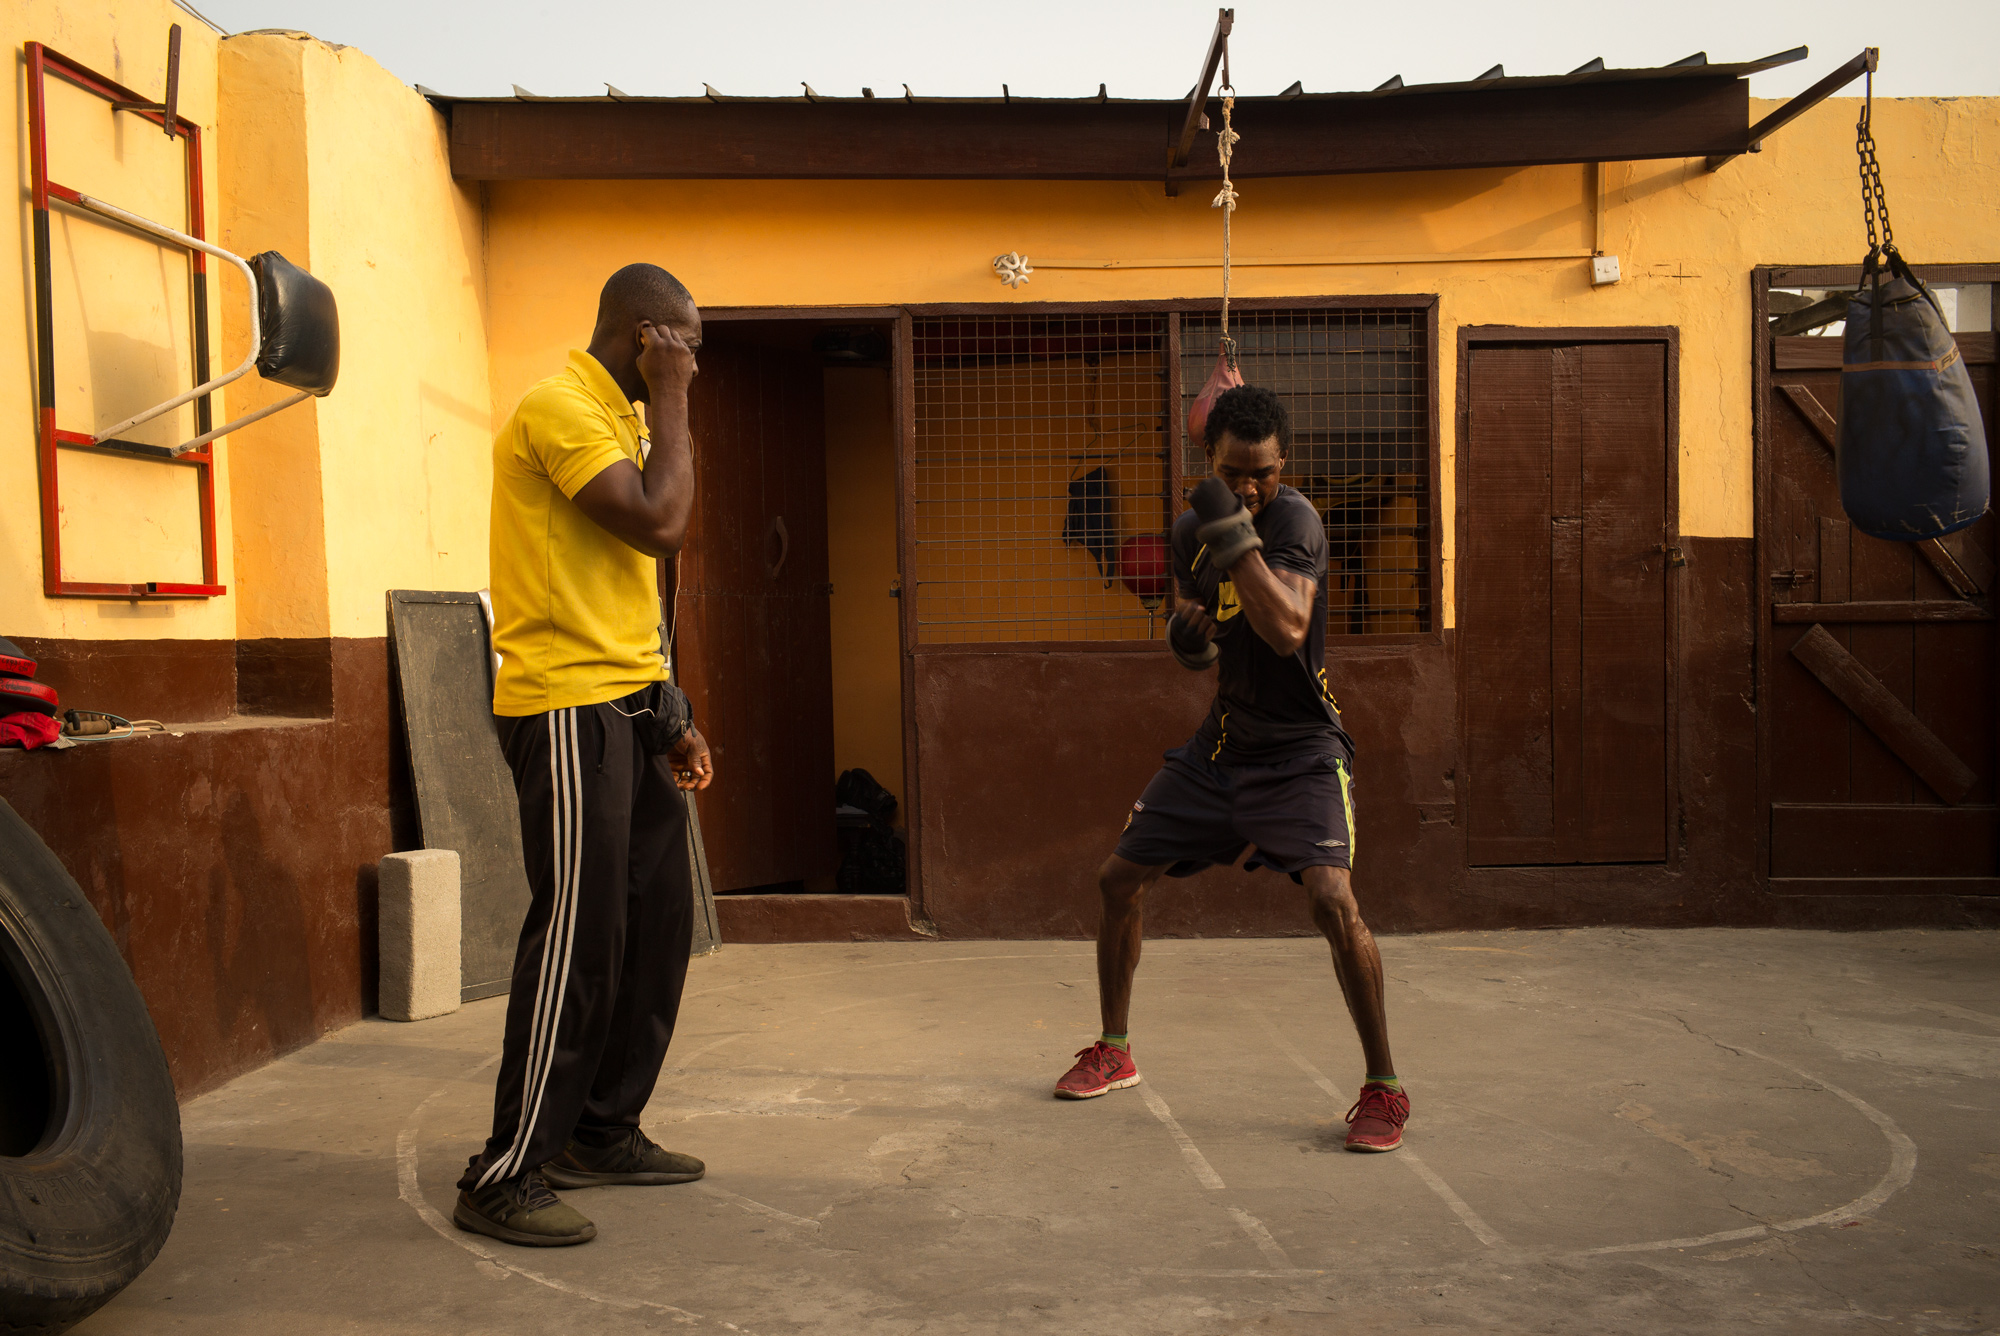 Theophilus Tetteh, 19, and his coach preparing for a fight Theophilus won on December 26th, 2018 - Discipline Boxing Academy, James Town